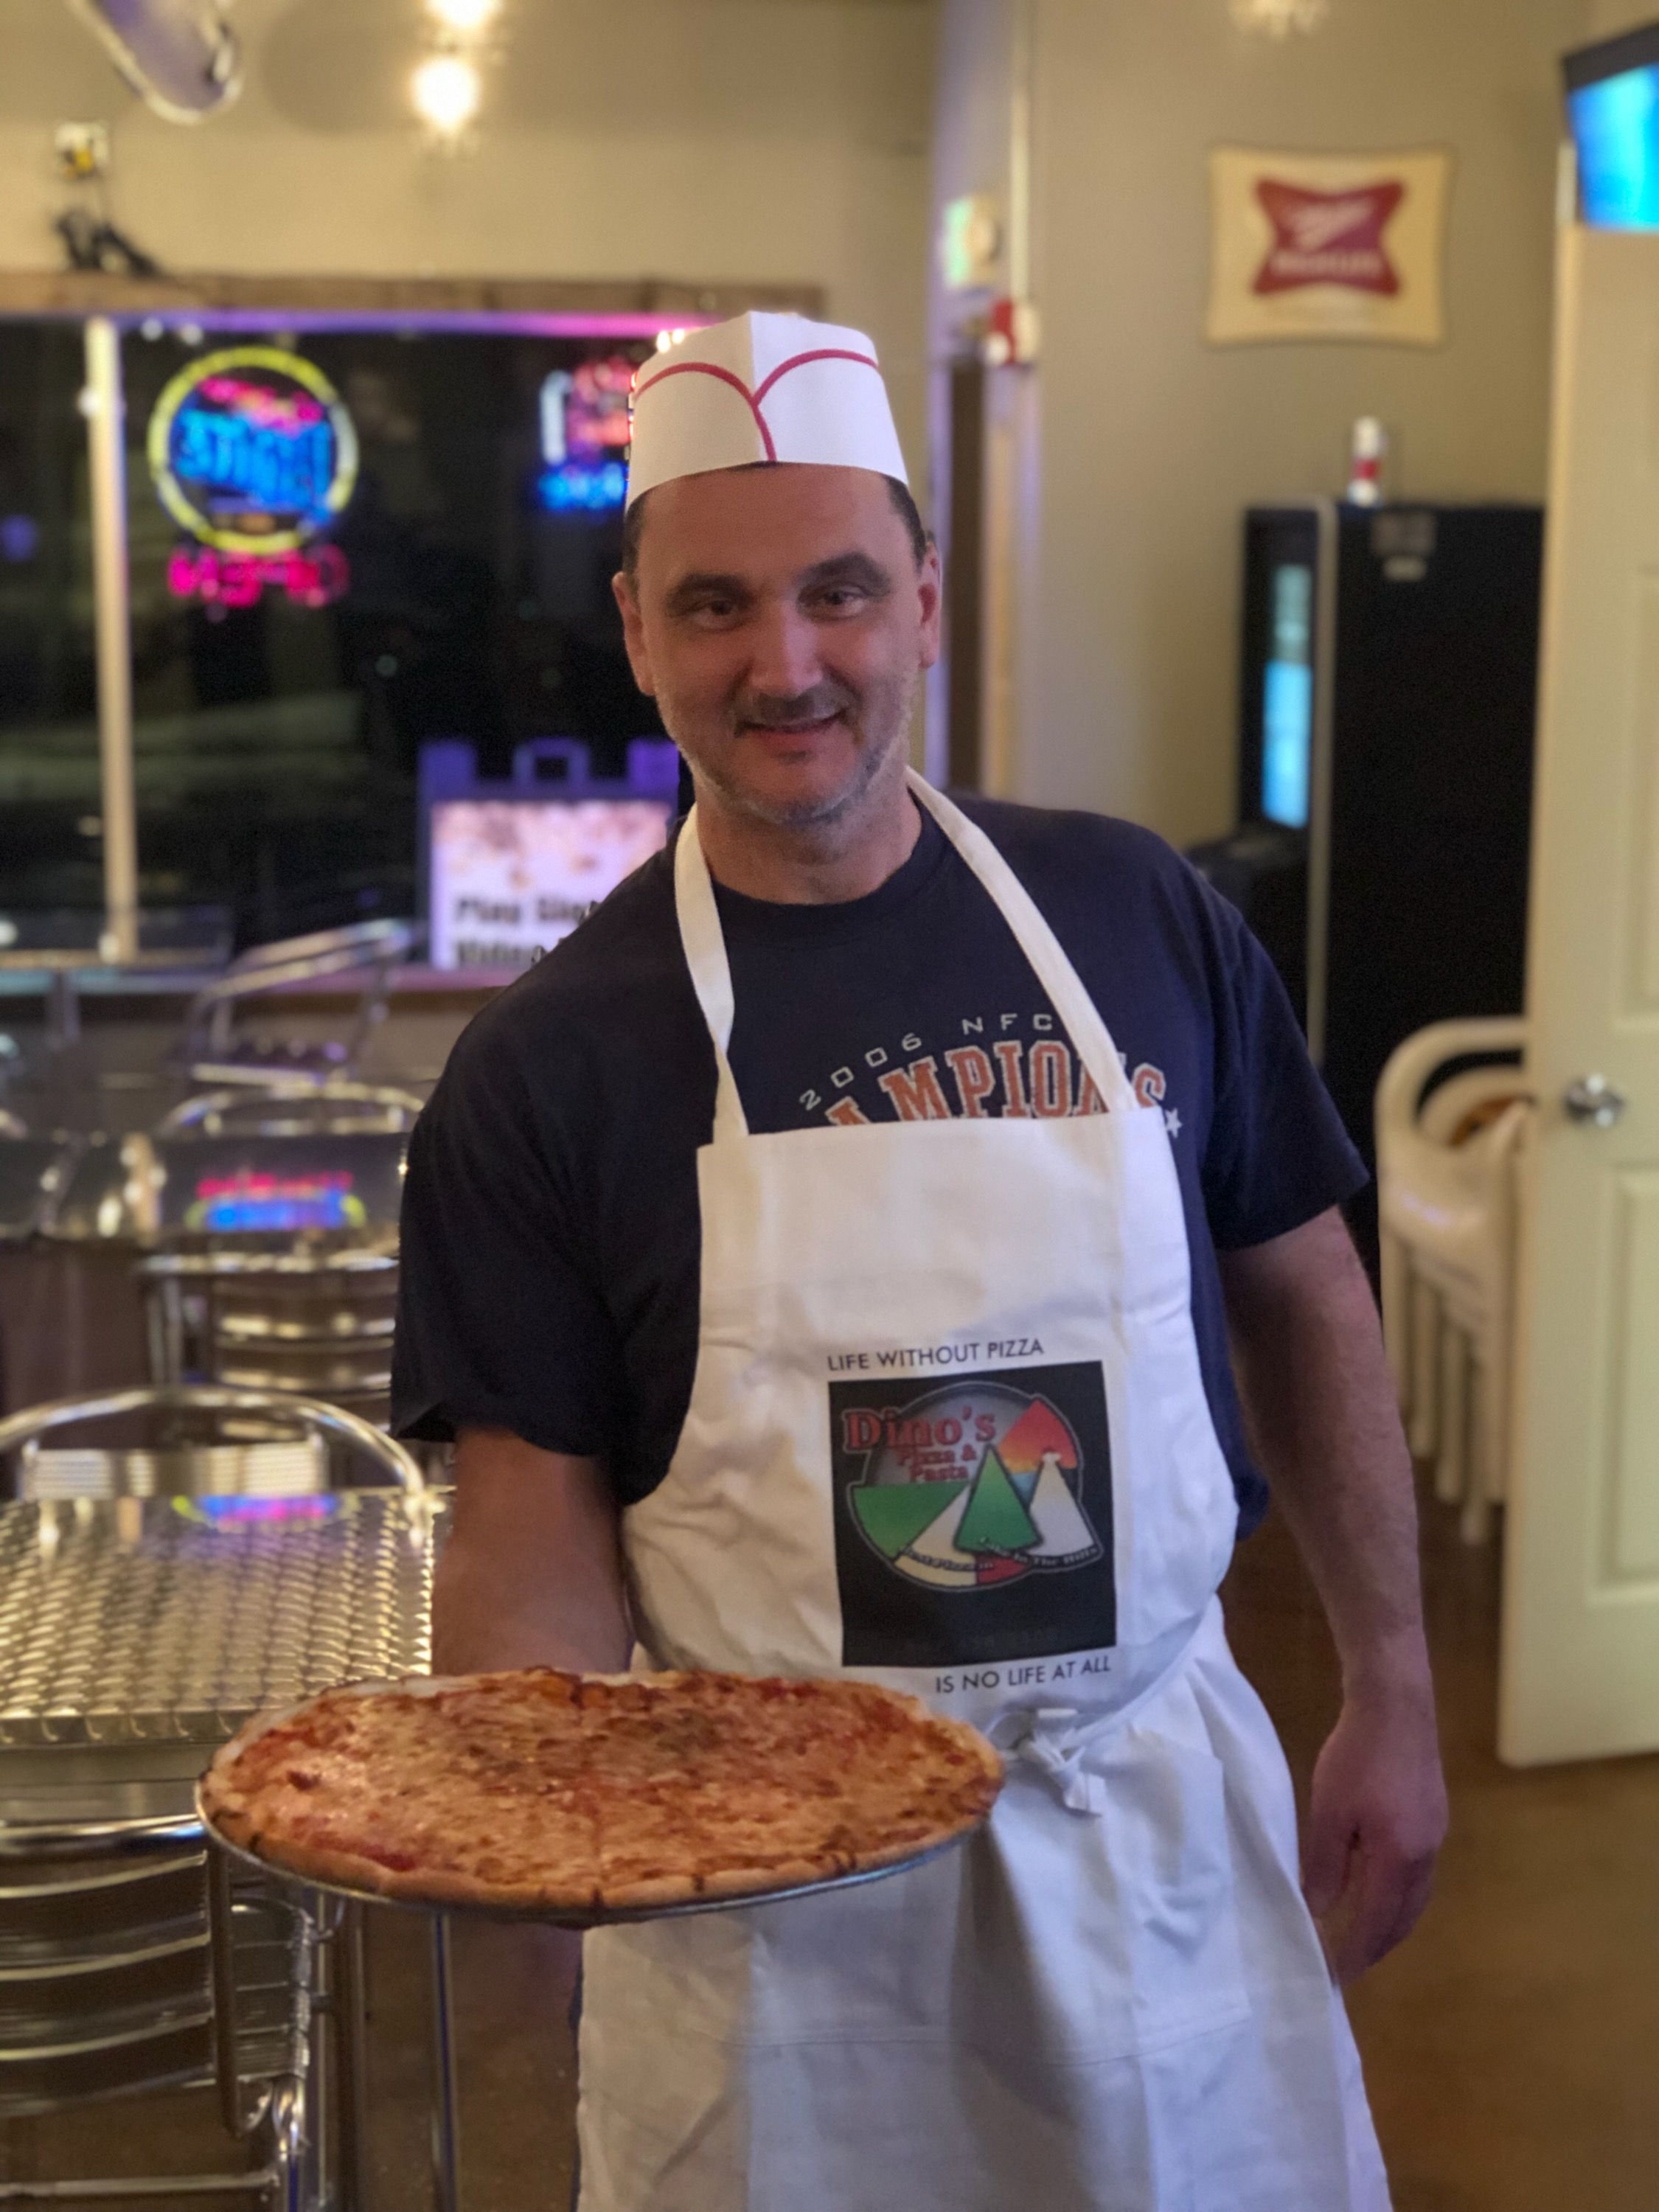 Dino proudly serving one of his delicious homemade pizzas in his new seating area.